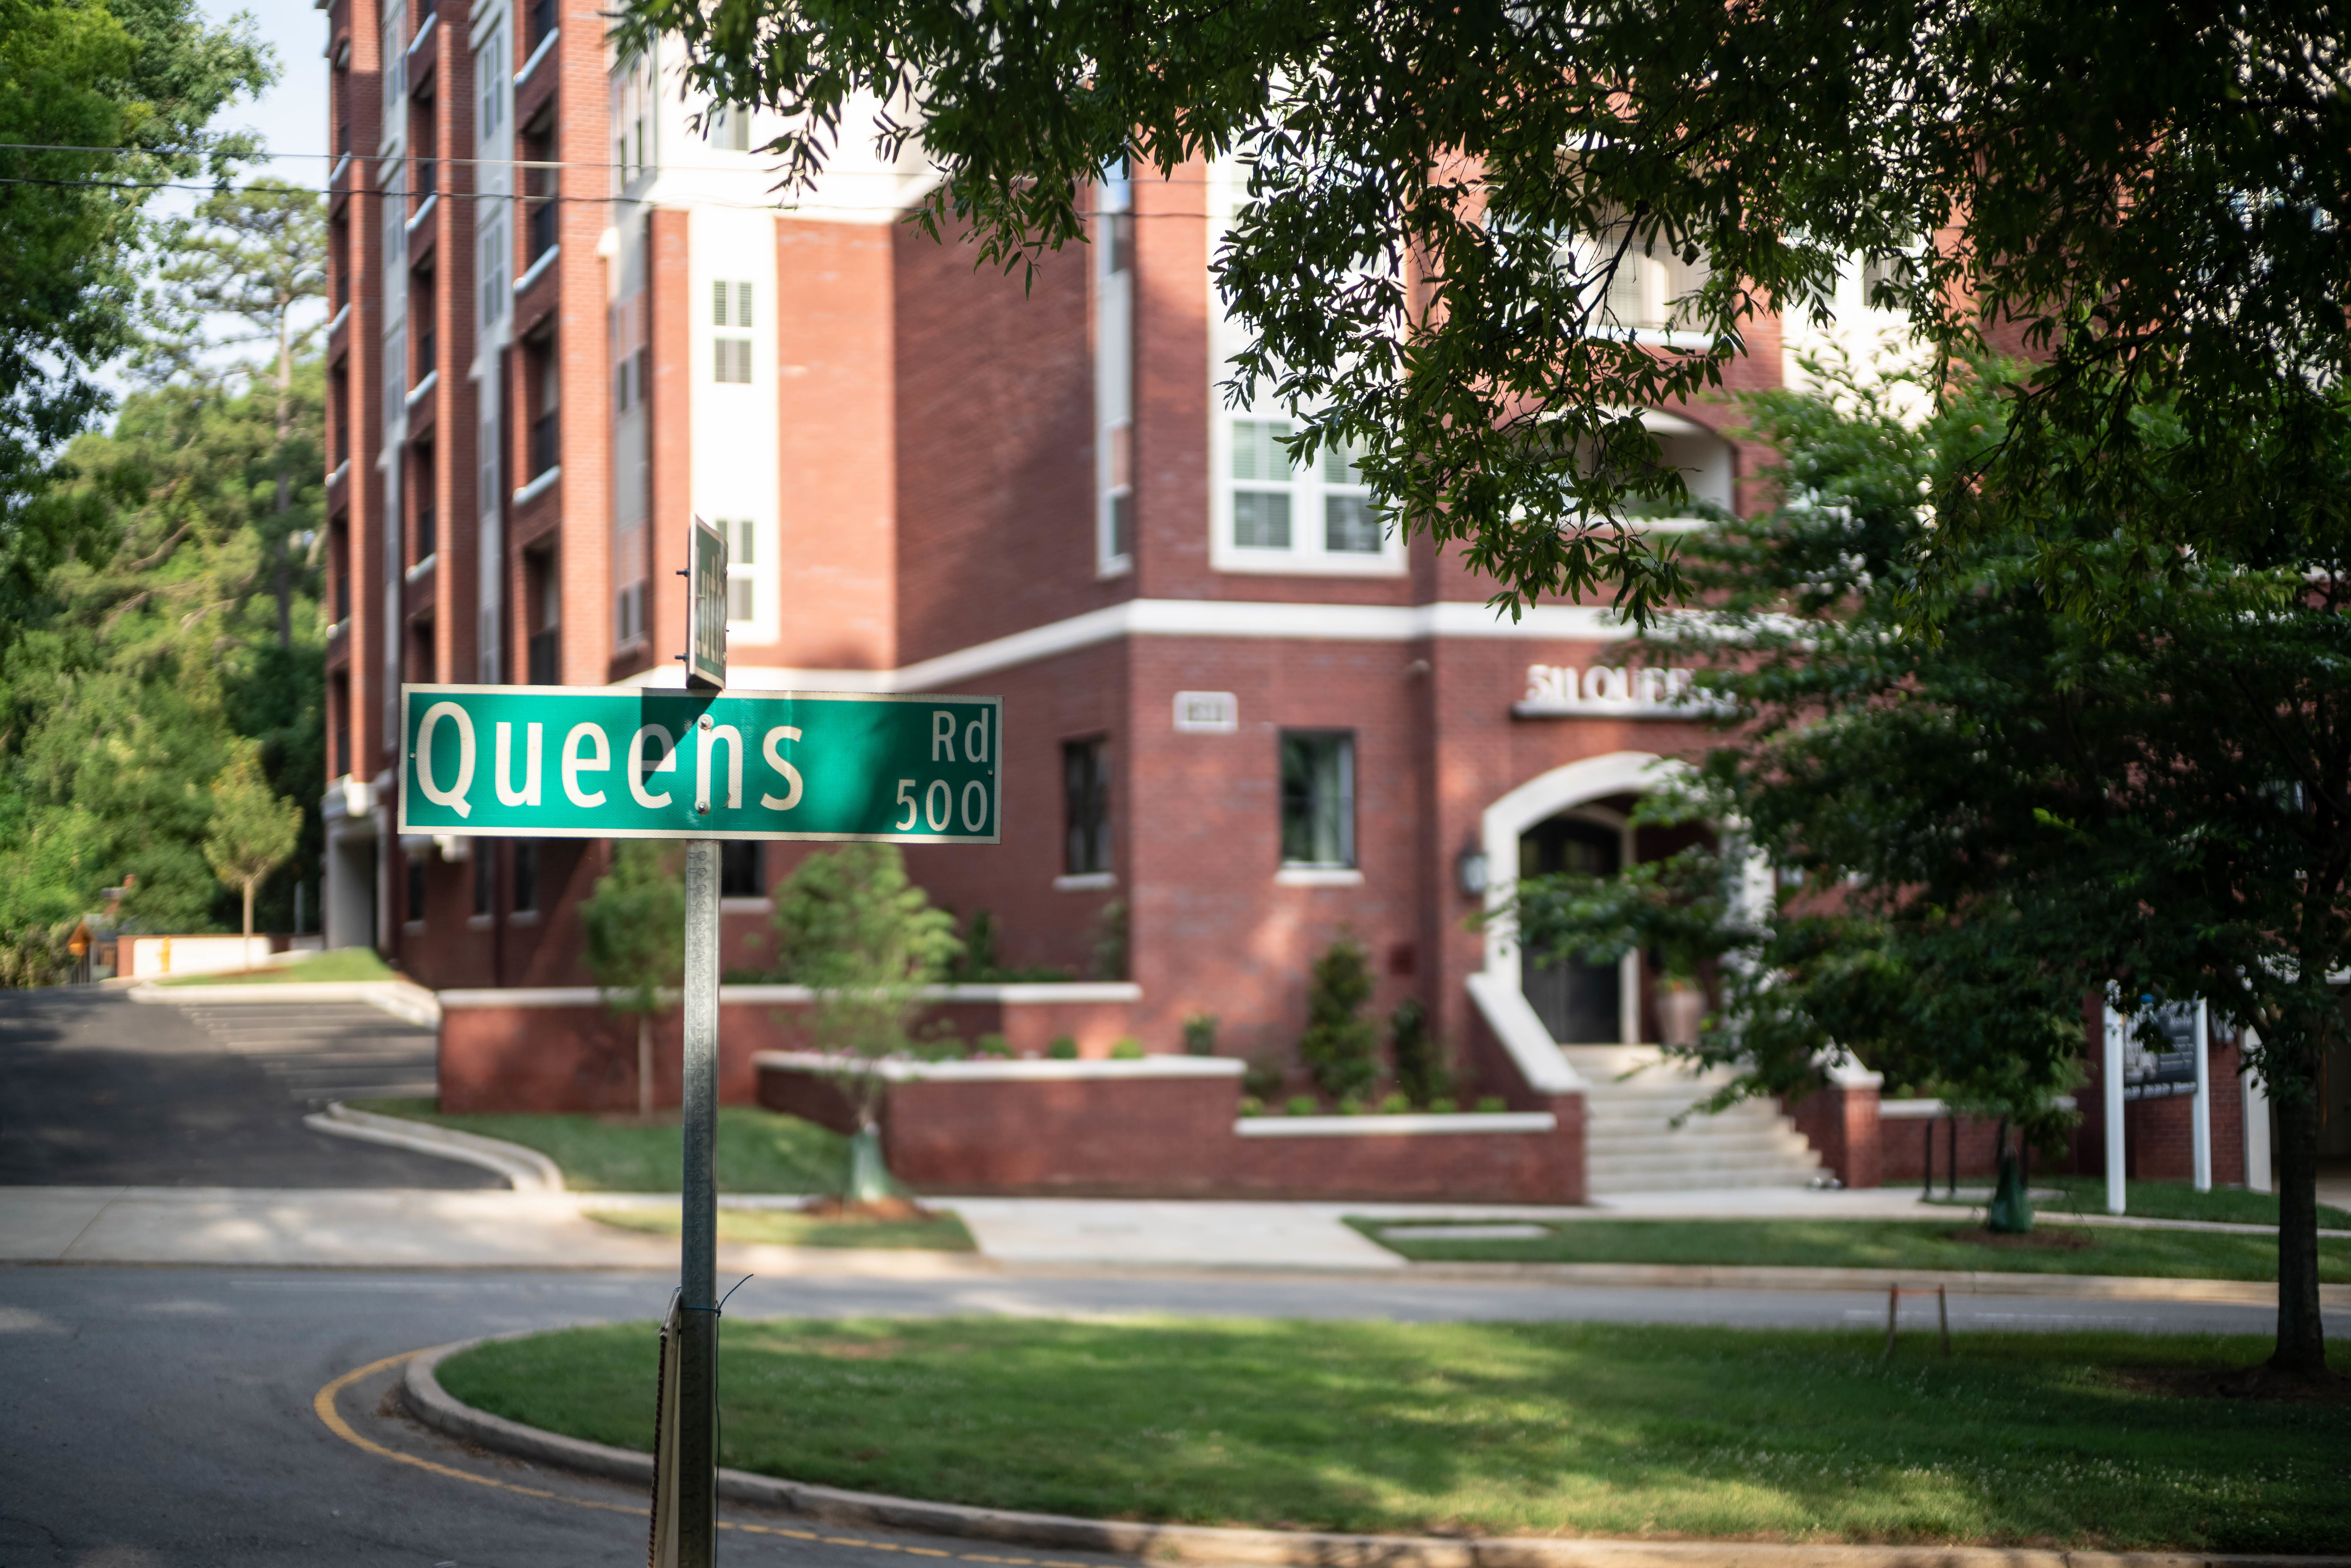 Photos and Video of 511 Queens in Charlotte, NC